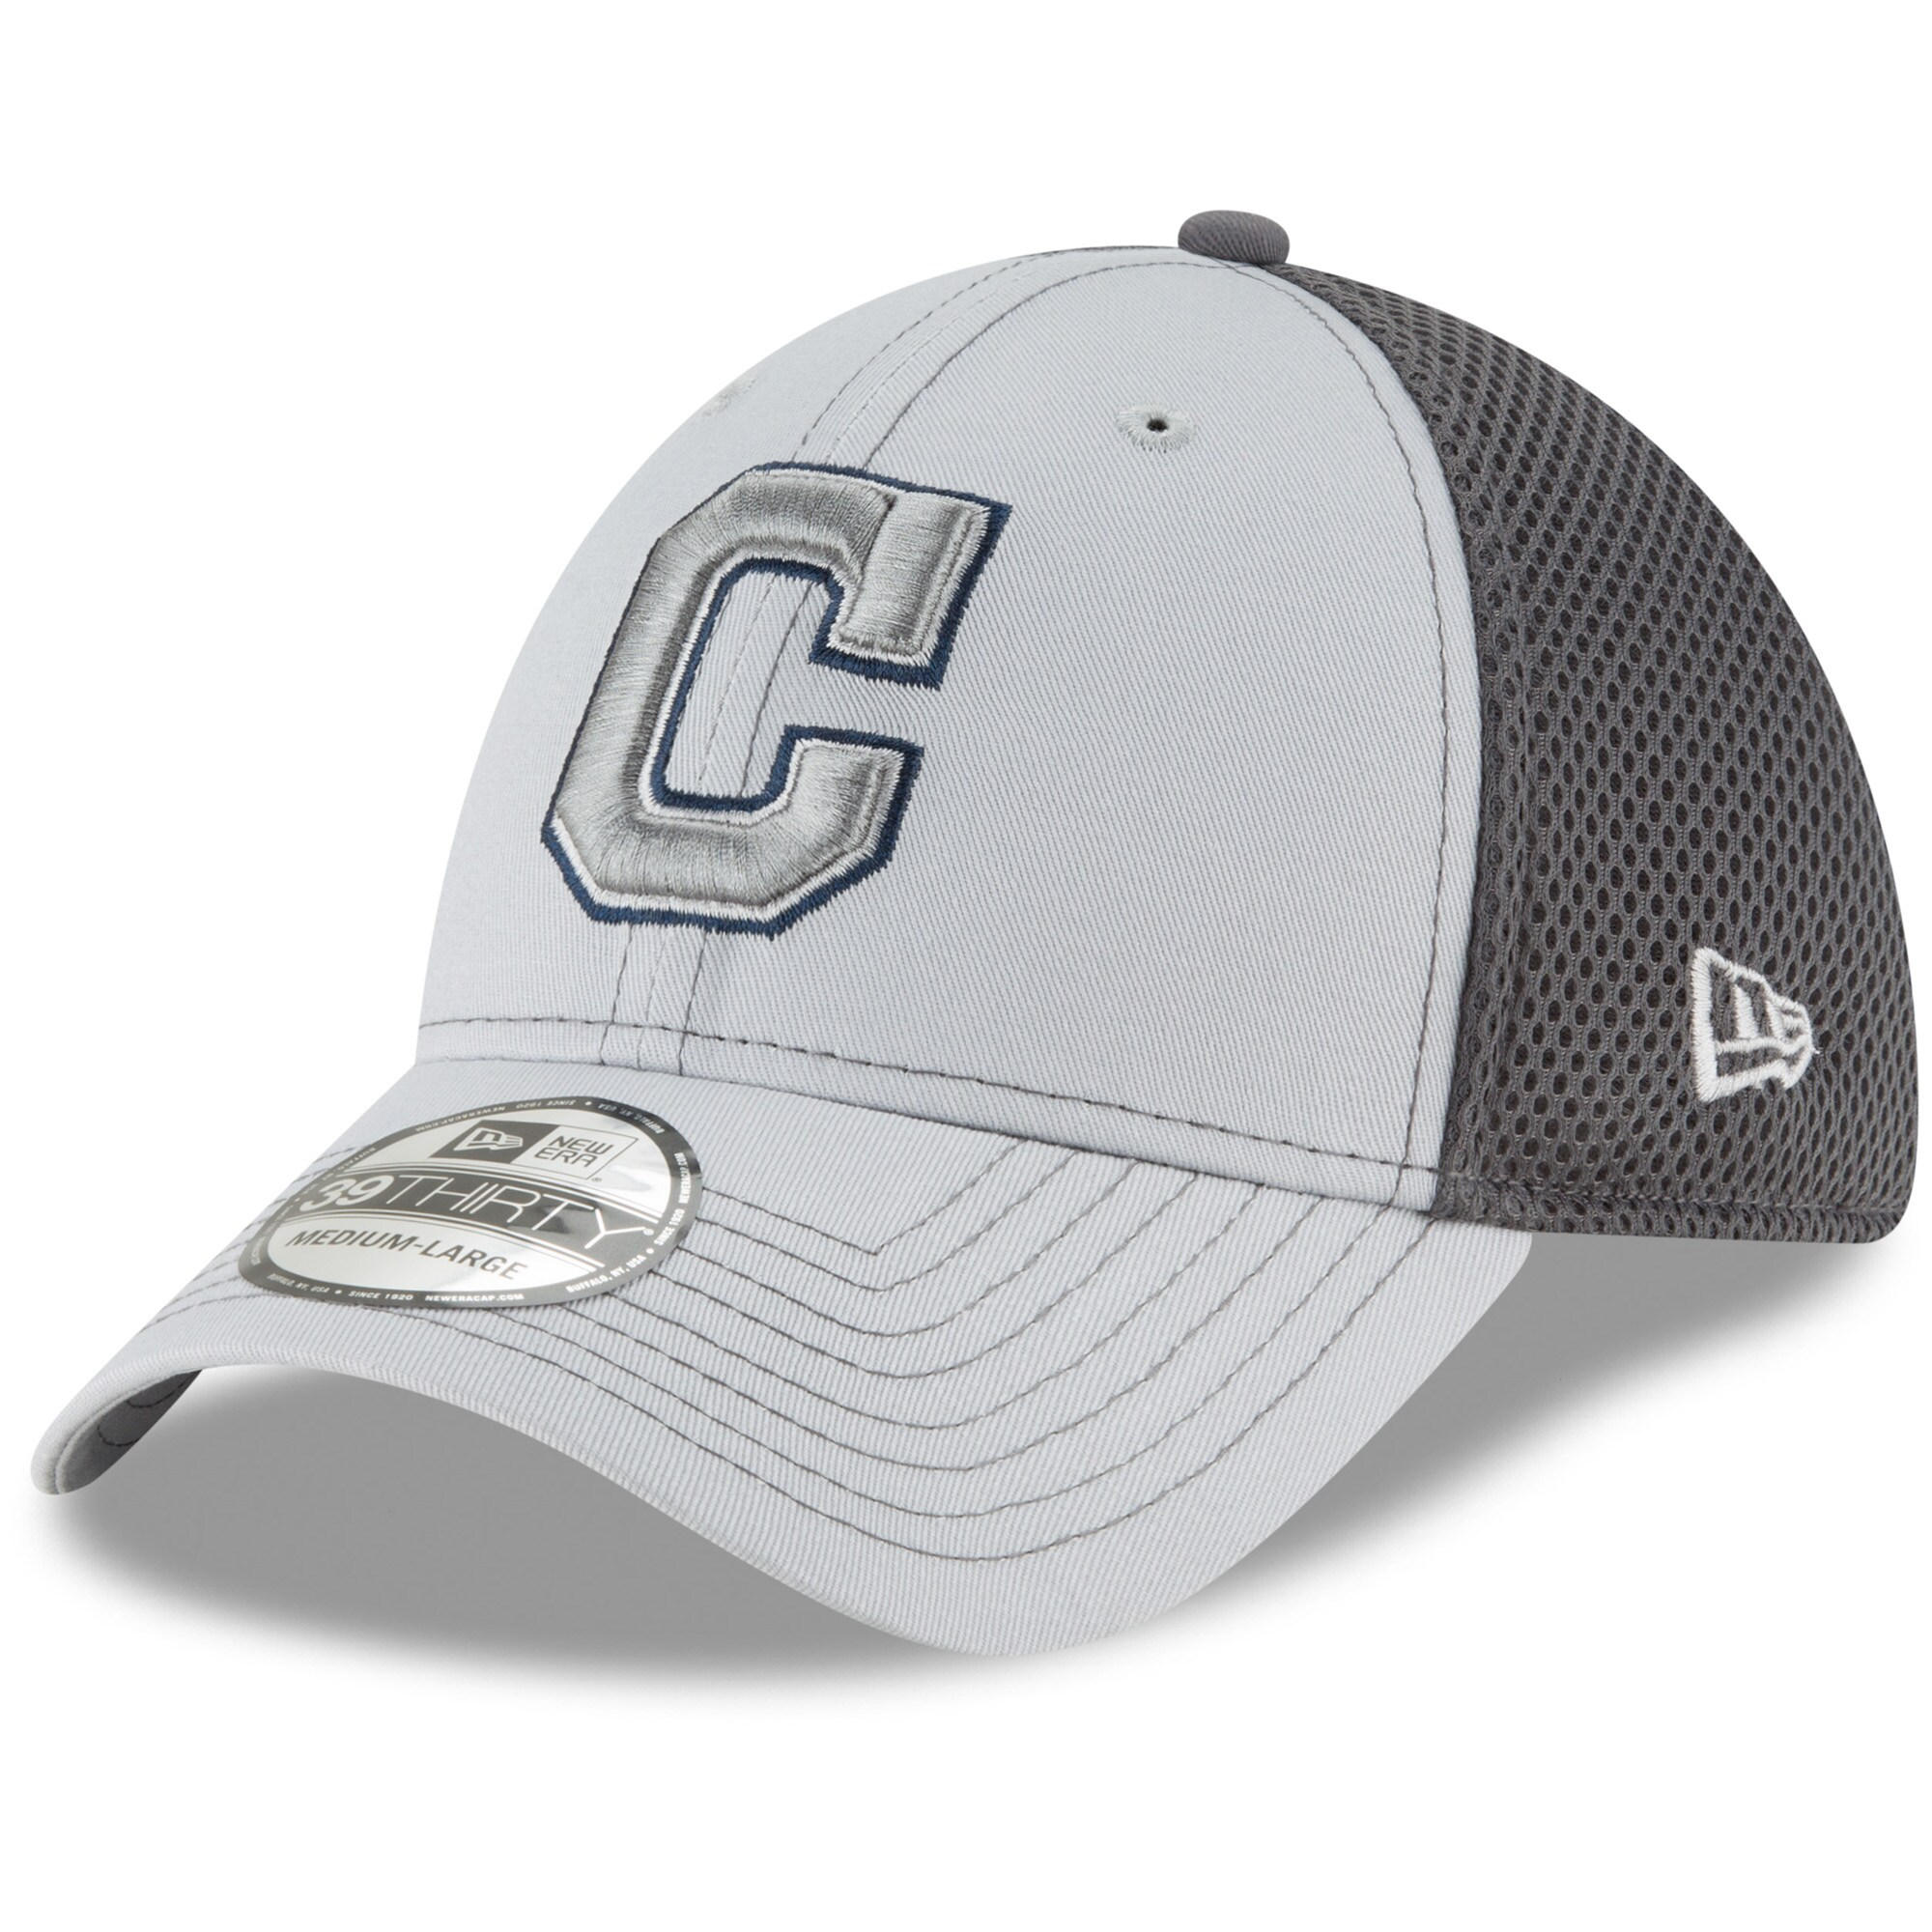 Cleveland Indians New Era Grayed Out Neo 39THIRTY Flex Hat - Gray